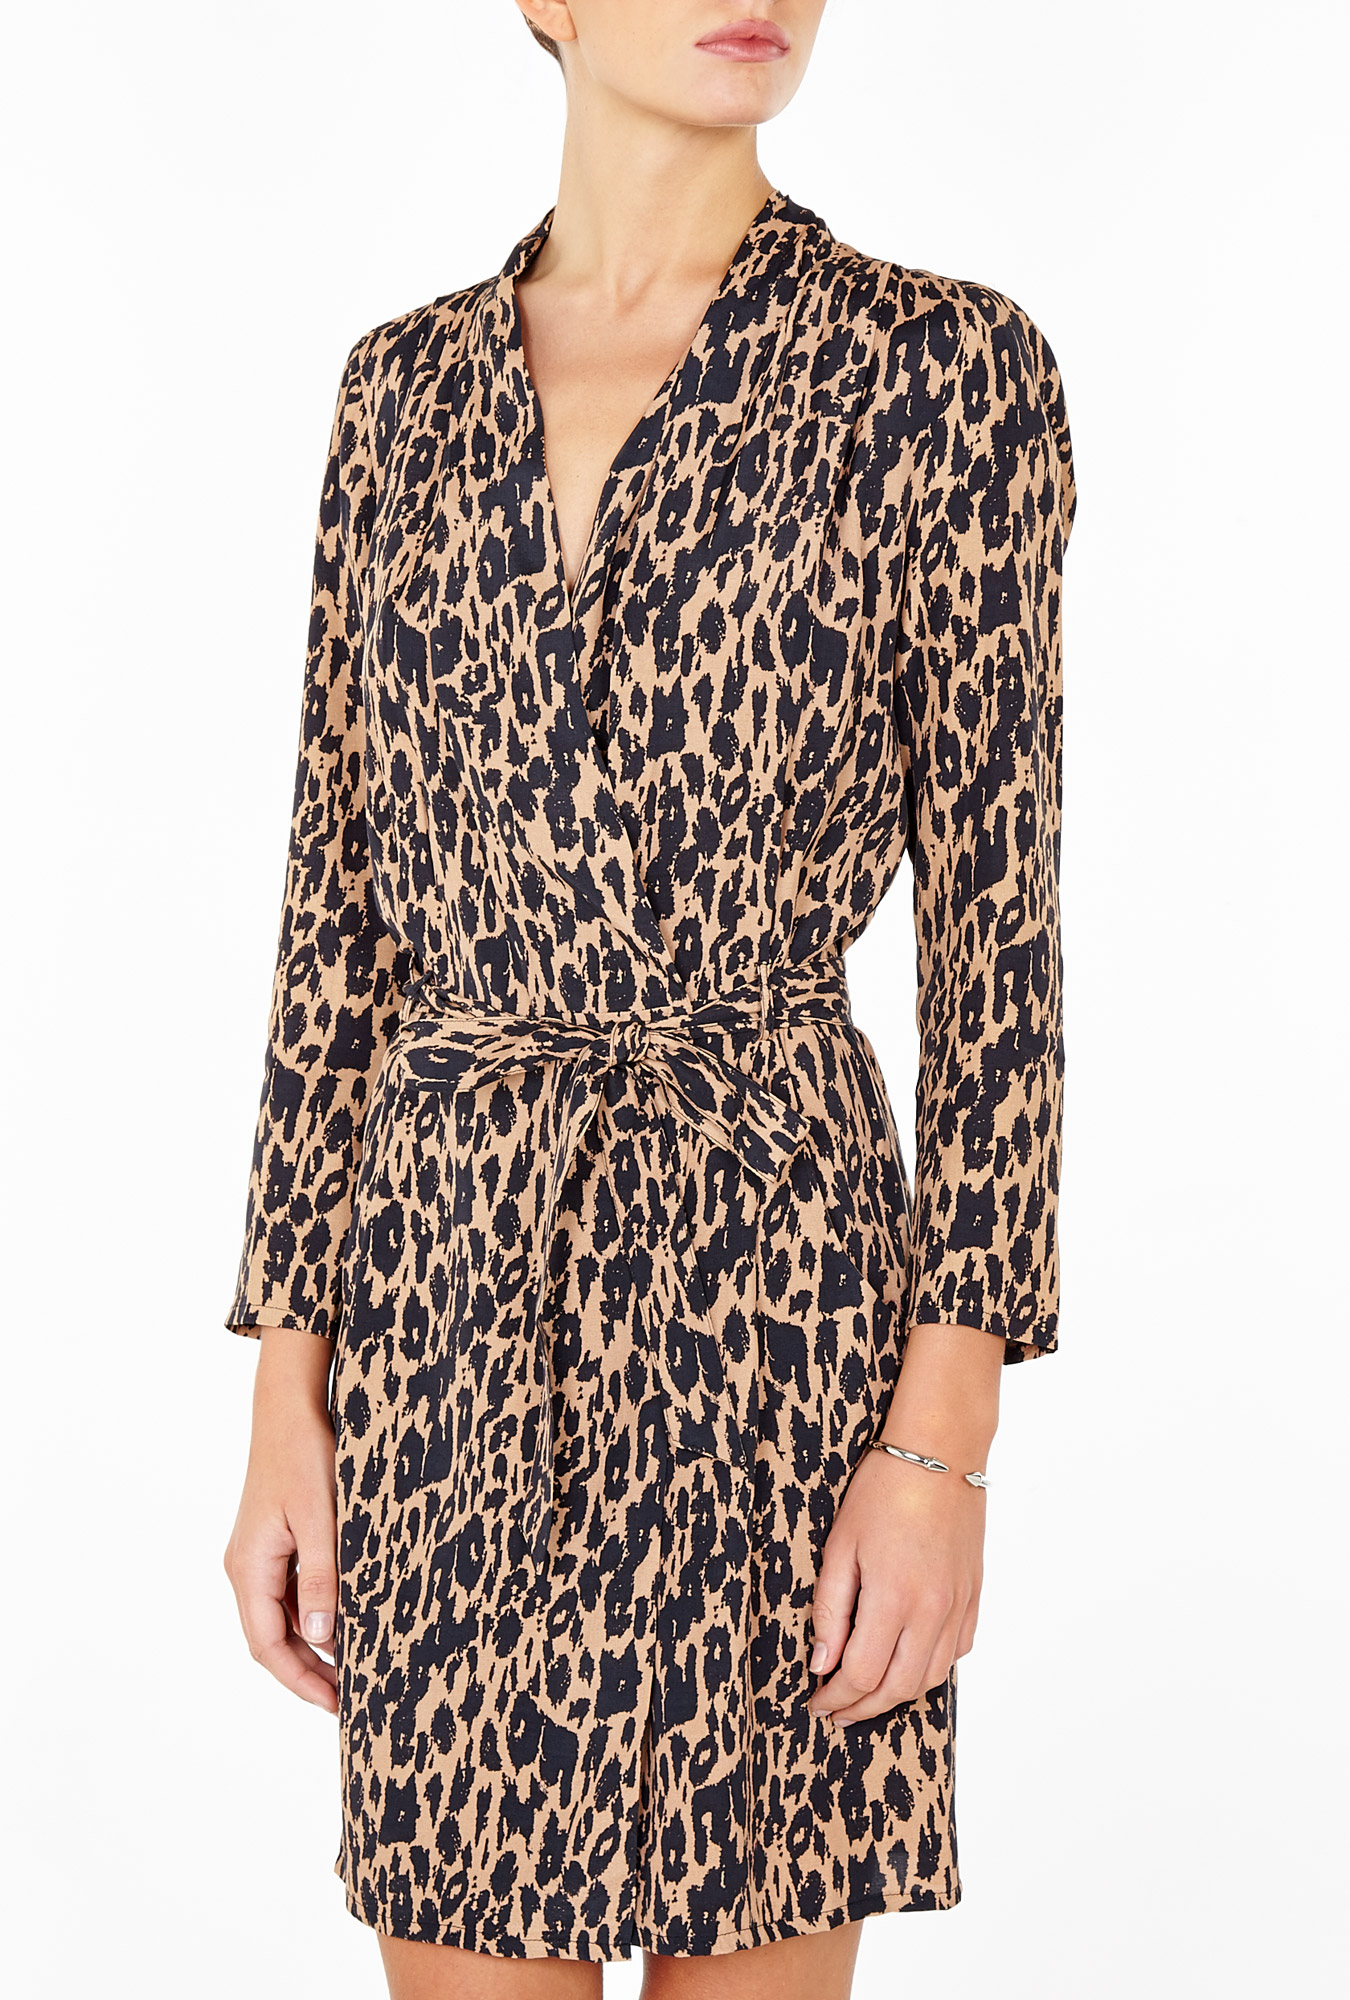 Ganni Leopard wrap dress, was £125, Now £75